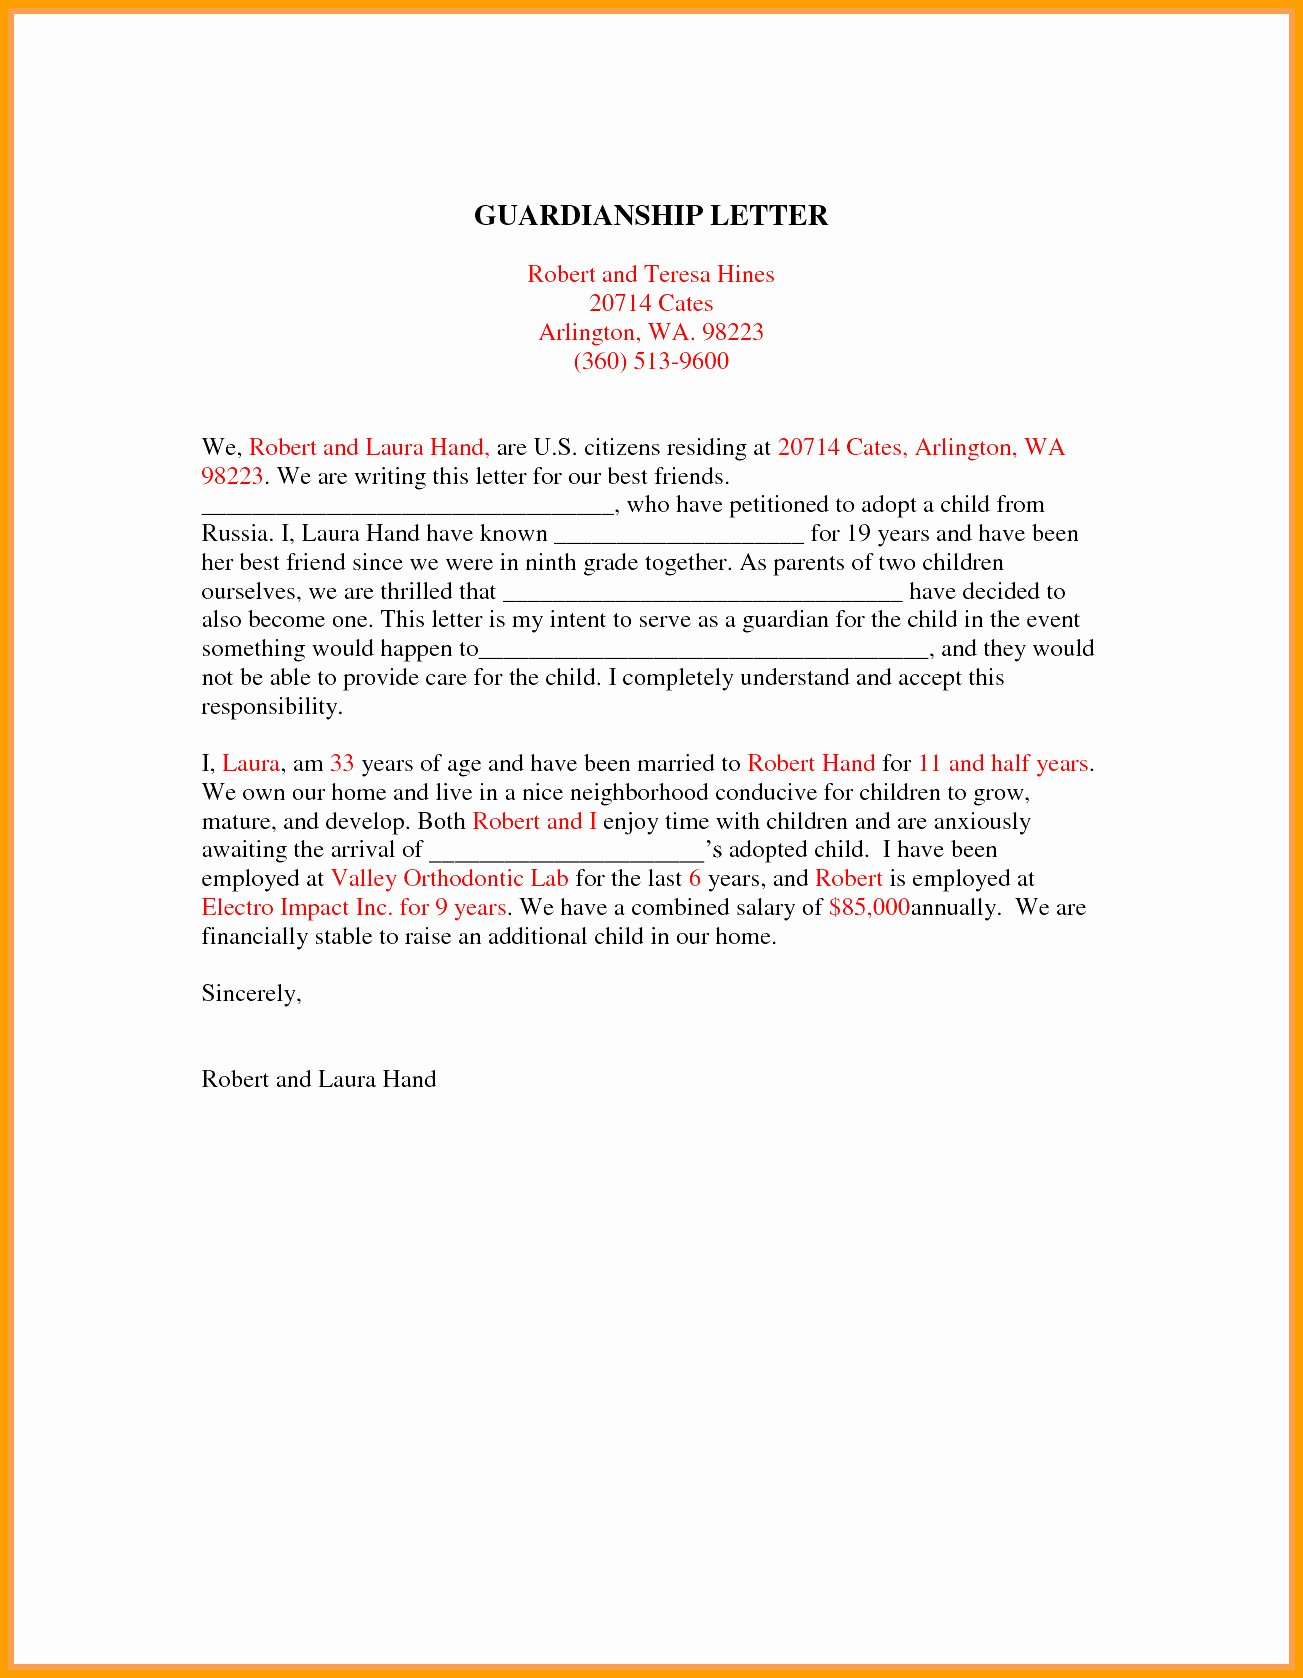 Sample Guardianship Letter In Case Of Death Luxury Template for Guardianship Letter Filename